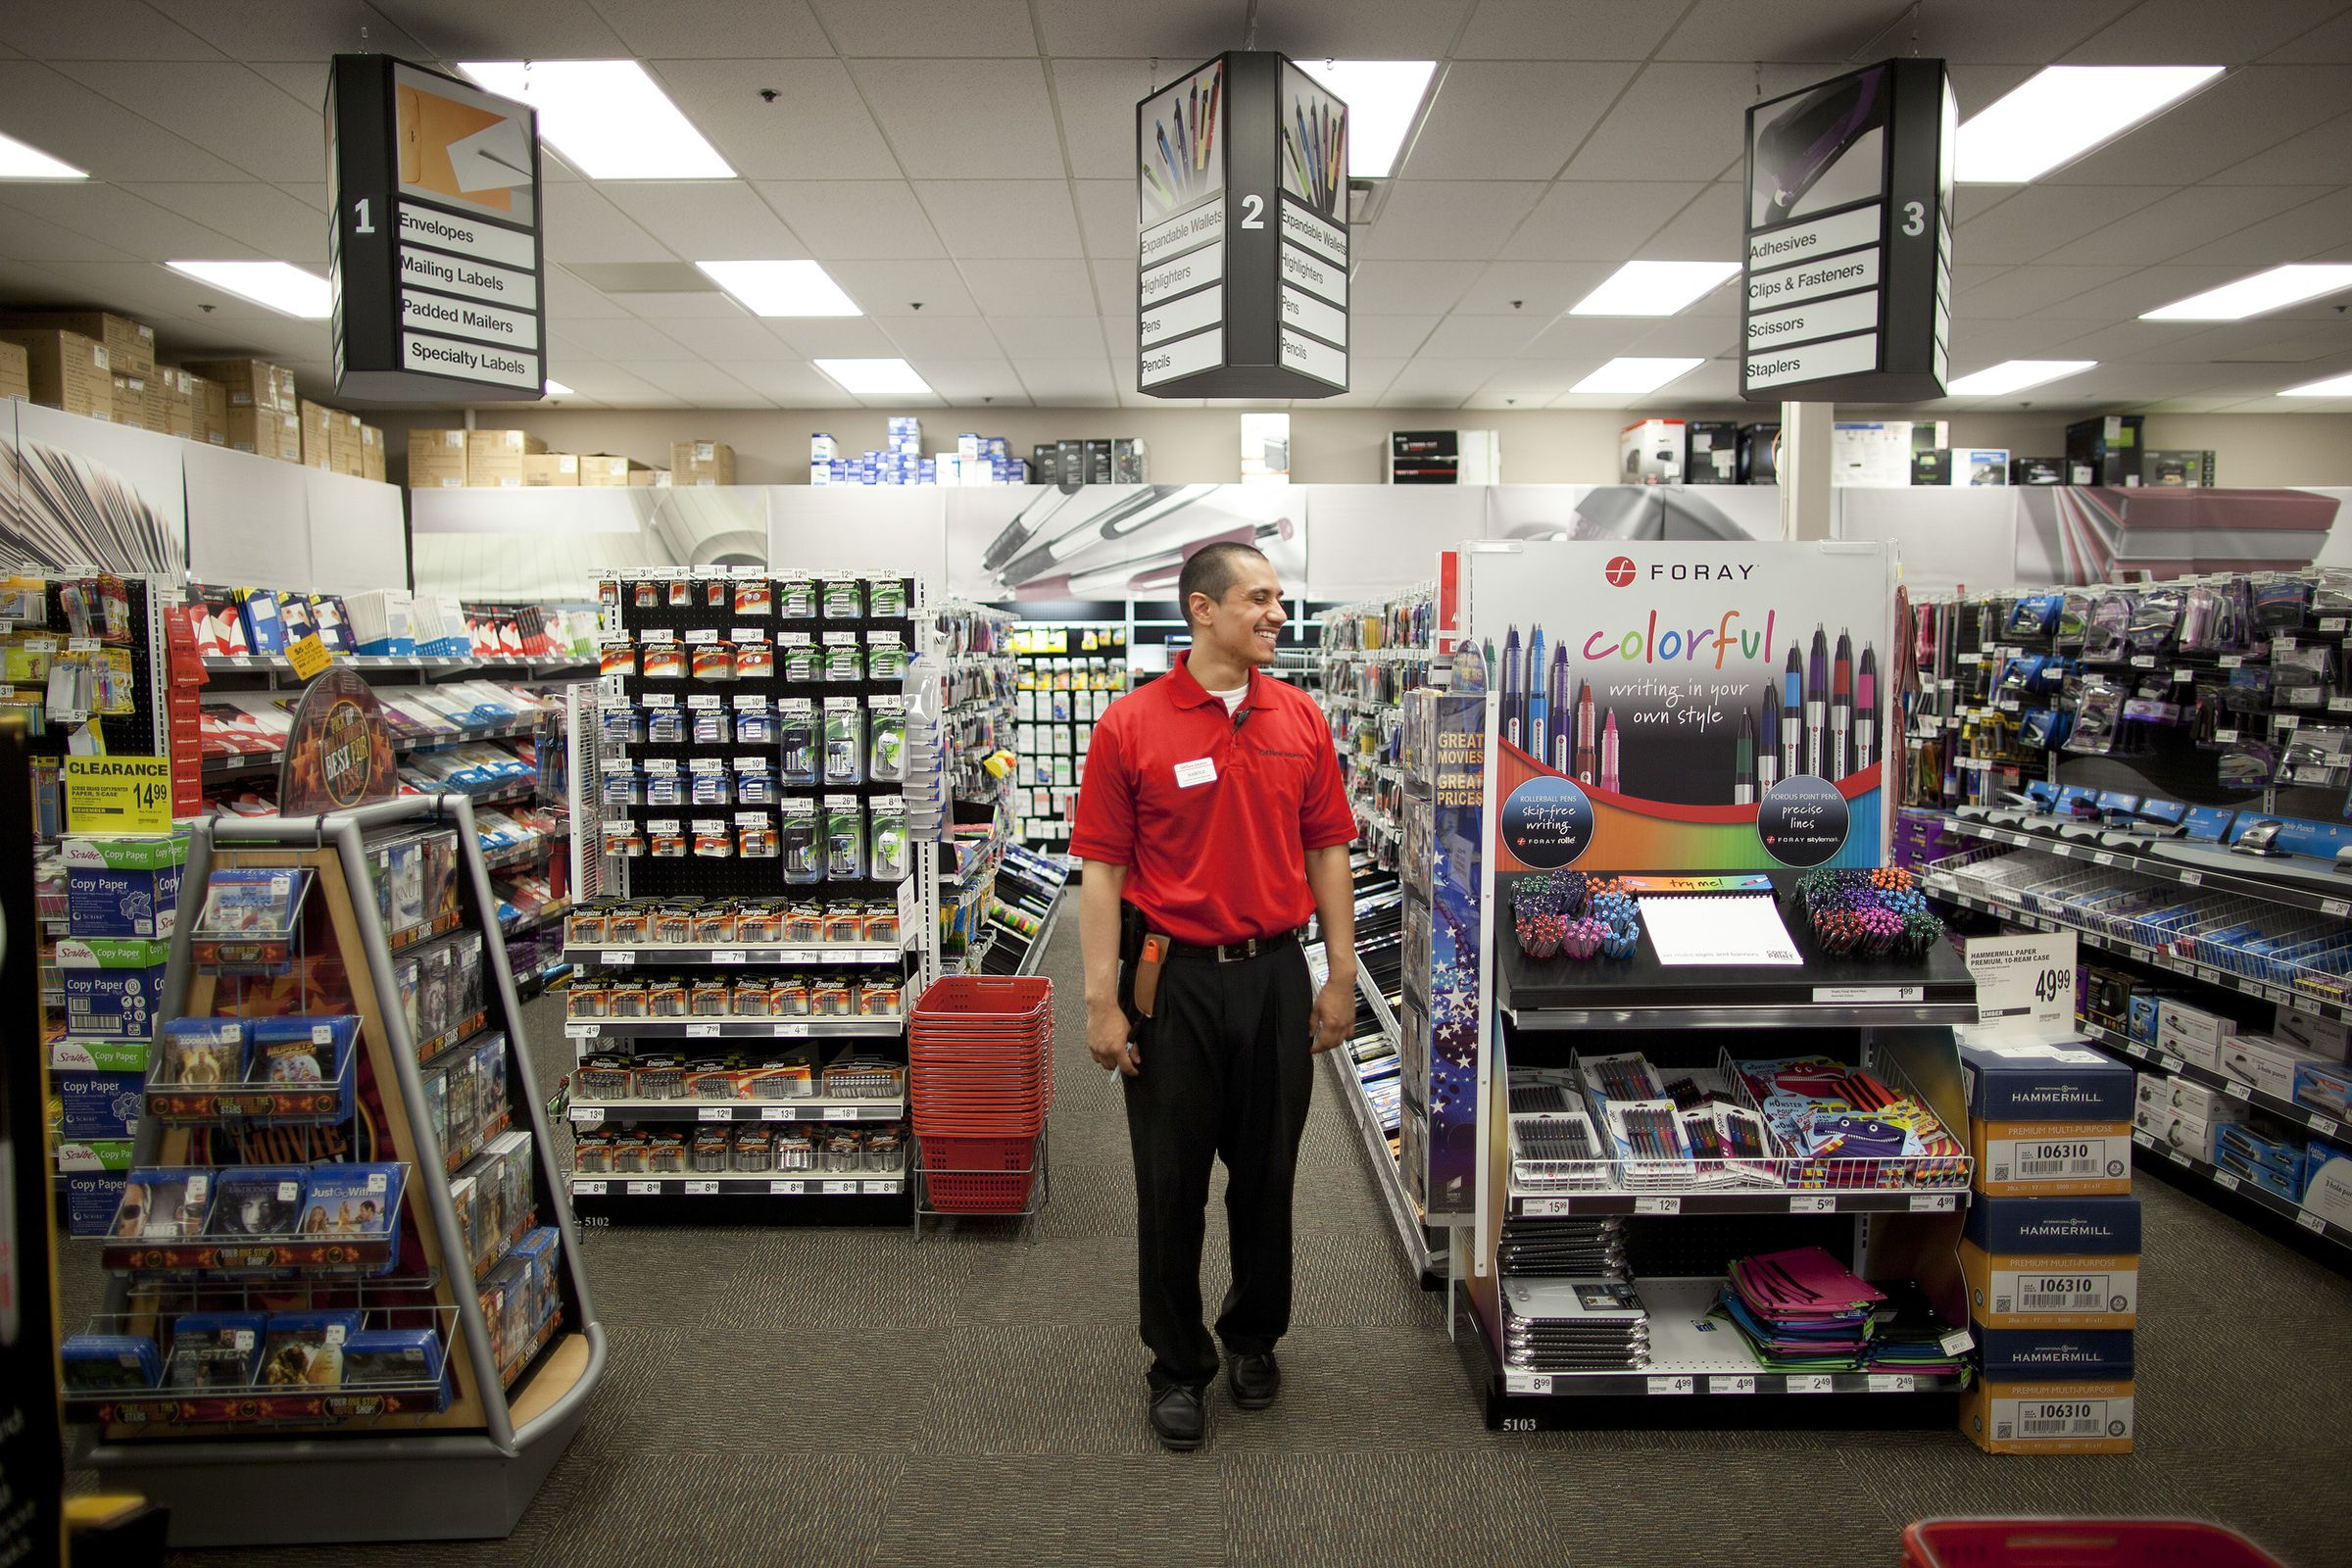 bba347d134b7 After merger with Office Depot dies, Staples shareholders revolt - The  Boston Globe